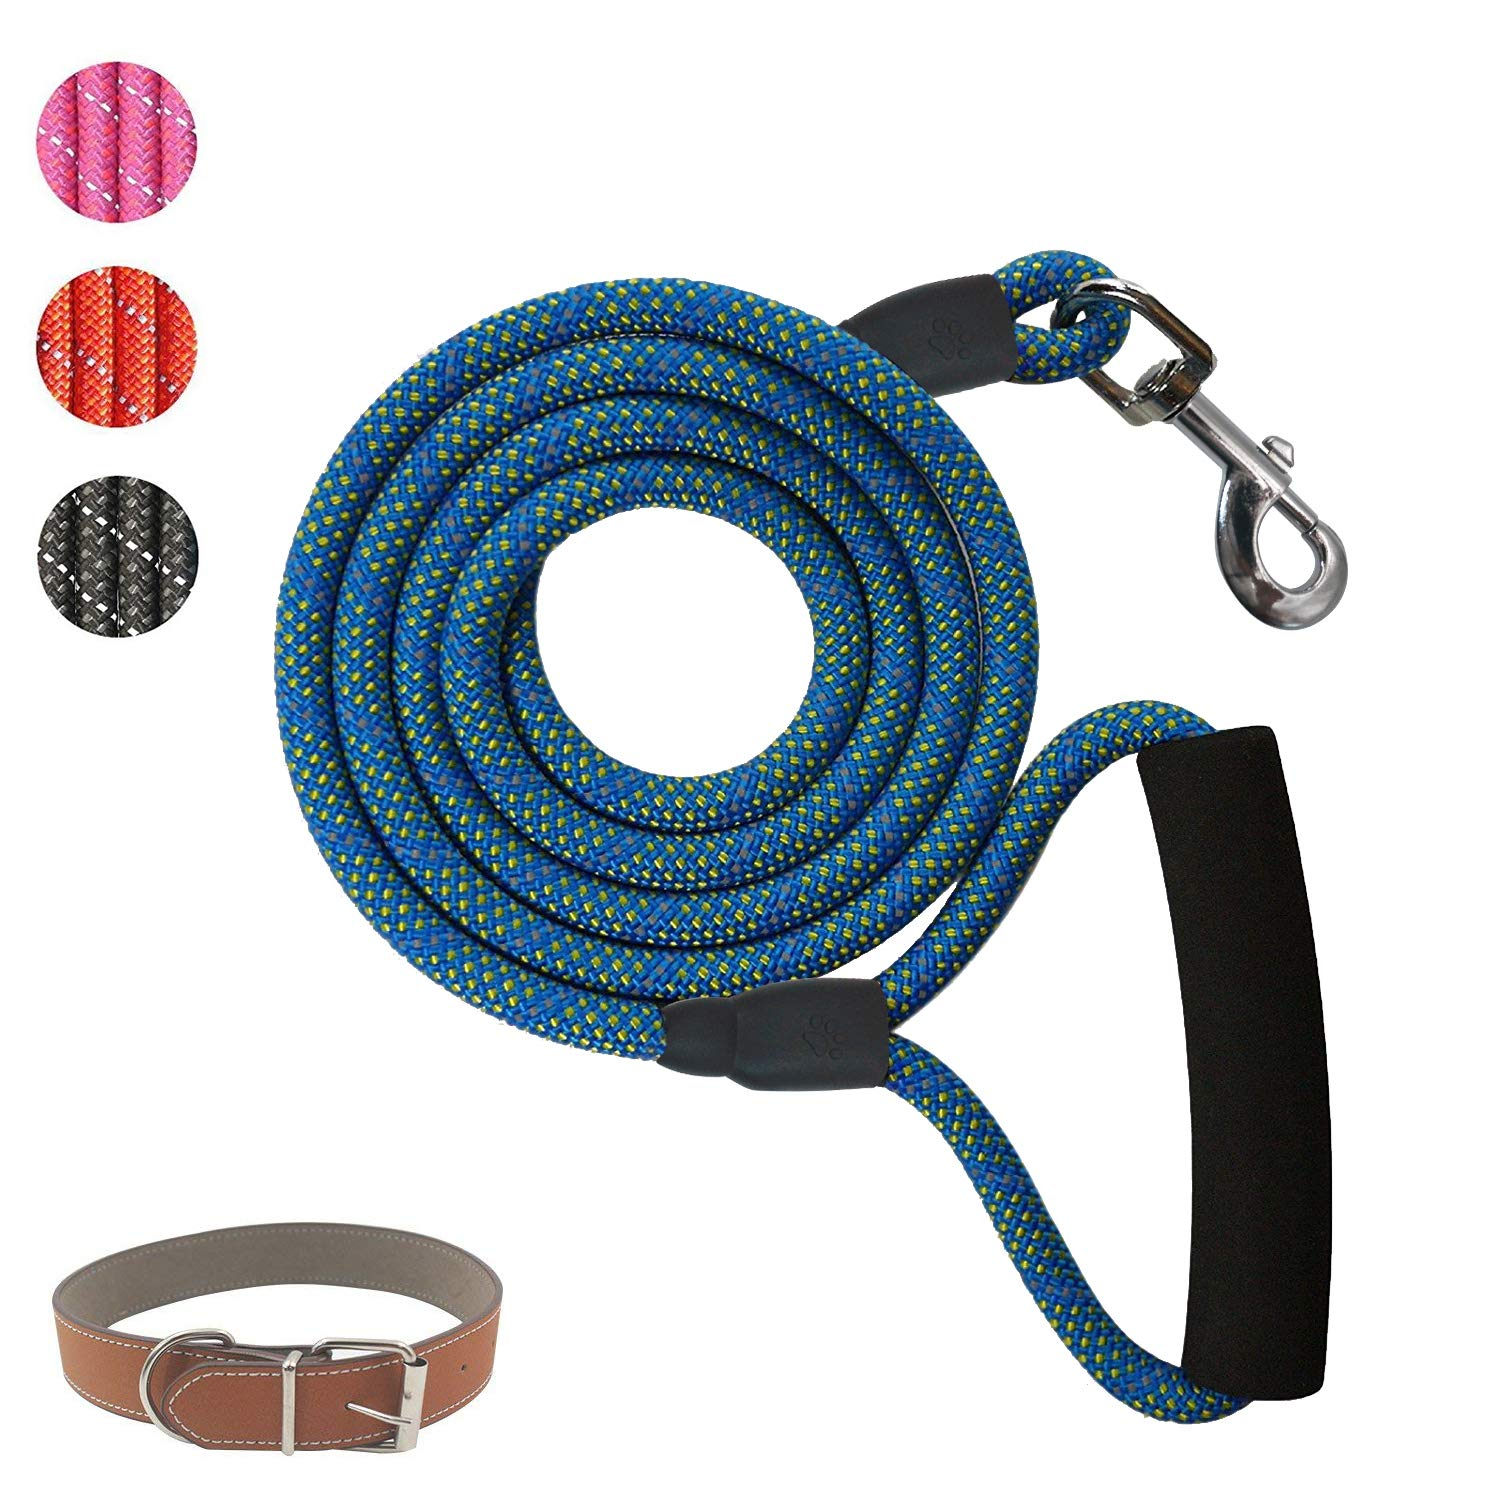 POWERIVER Dog Leash Lead, 6 Feet Strong Dog Lead with with Dog Collar, 1.8 M Heavy Duty Dog Leash with Highly Reflective Threads,Perfect for Medium and Large Dogs- Blue